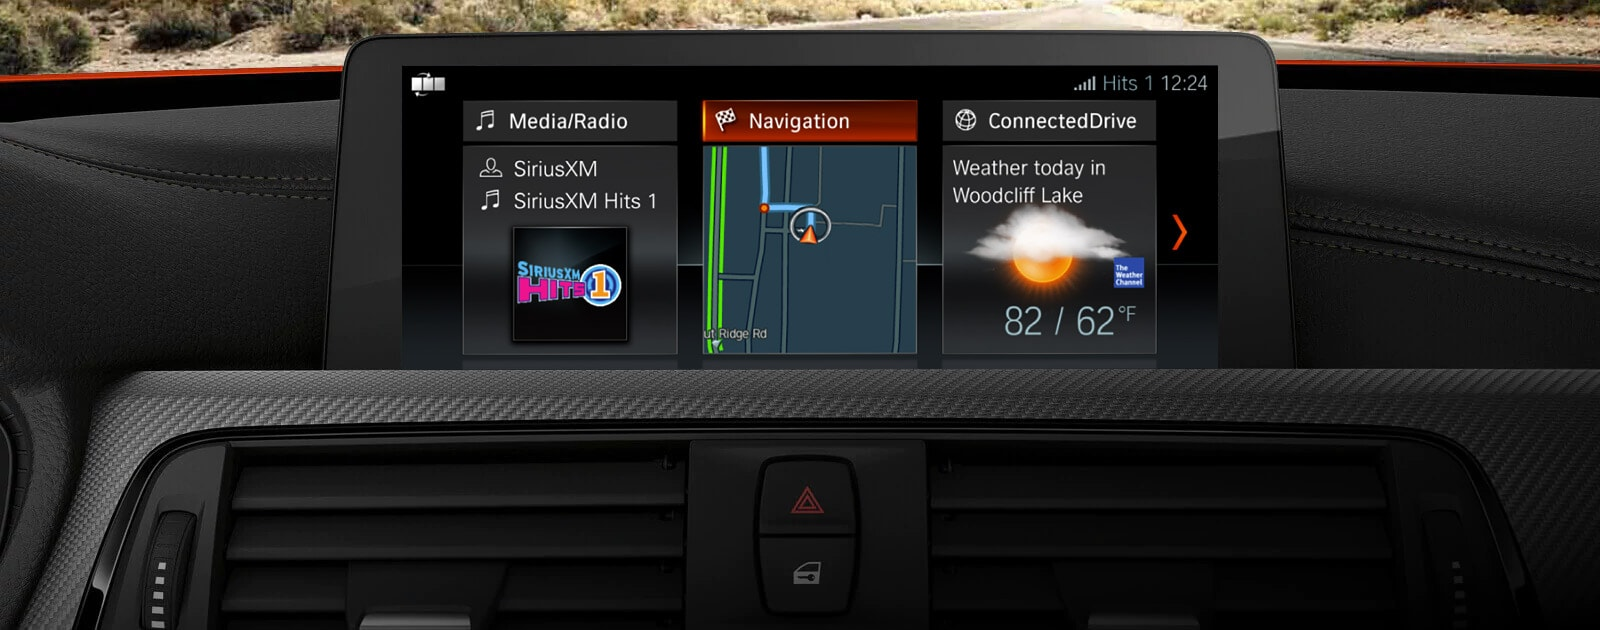 Closeup of the iDrive screen in the 2019 BMW 4 Series Gran Coupe, showing BMW Navigation, media player, and weather forecast